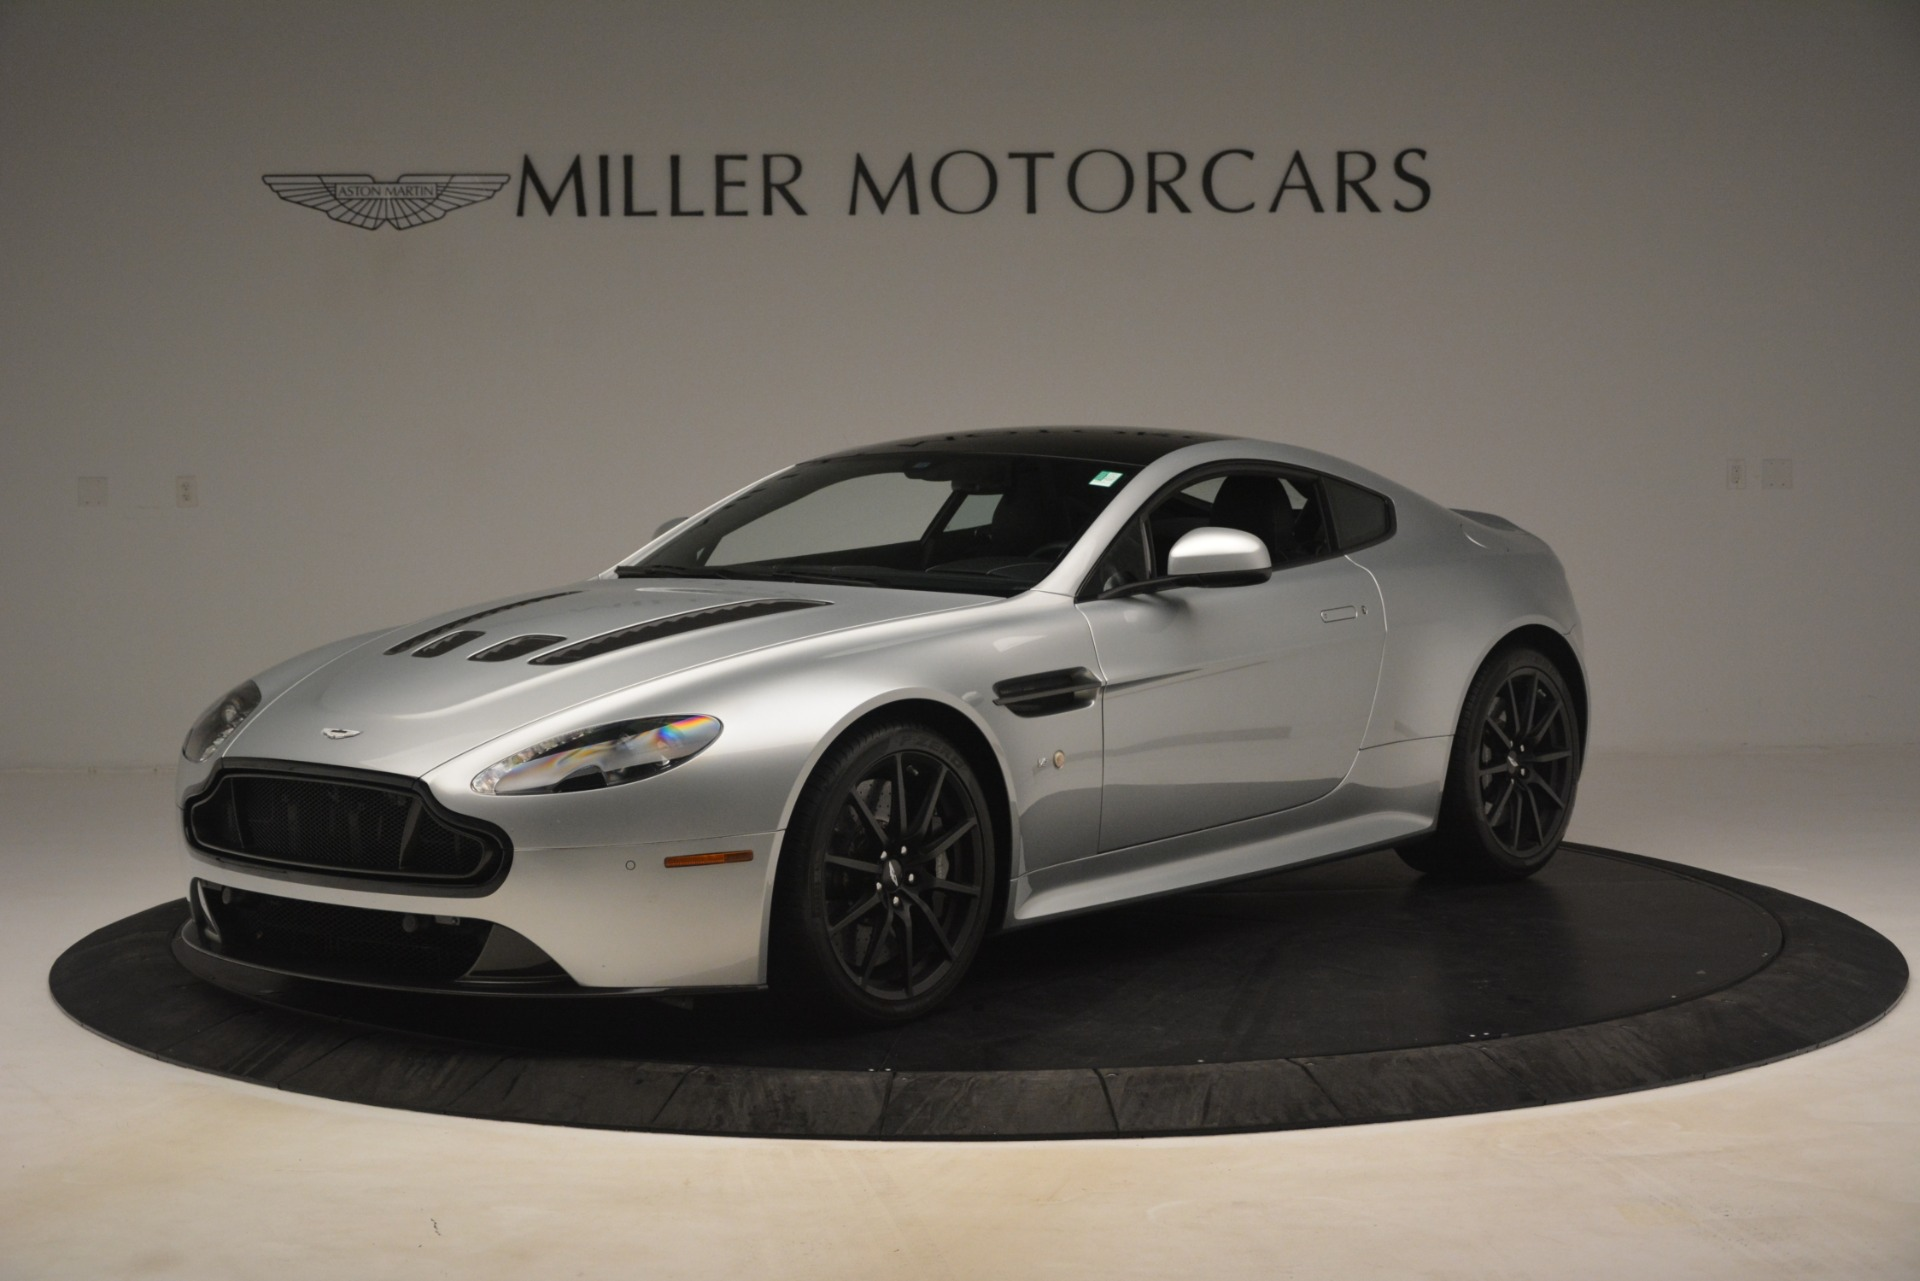 Used 2015 Aston Martin V12 Vantage S Coupe for sale Sold at Maserati of Greenwich in Greenwich CT 06830 1